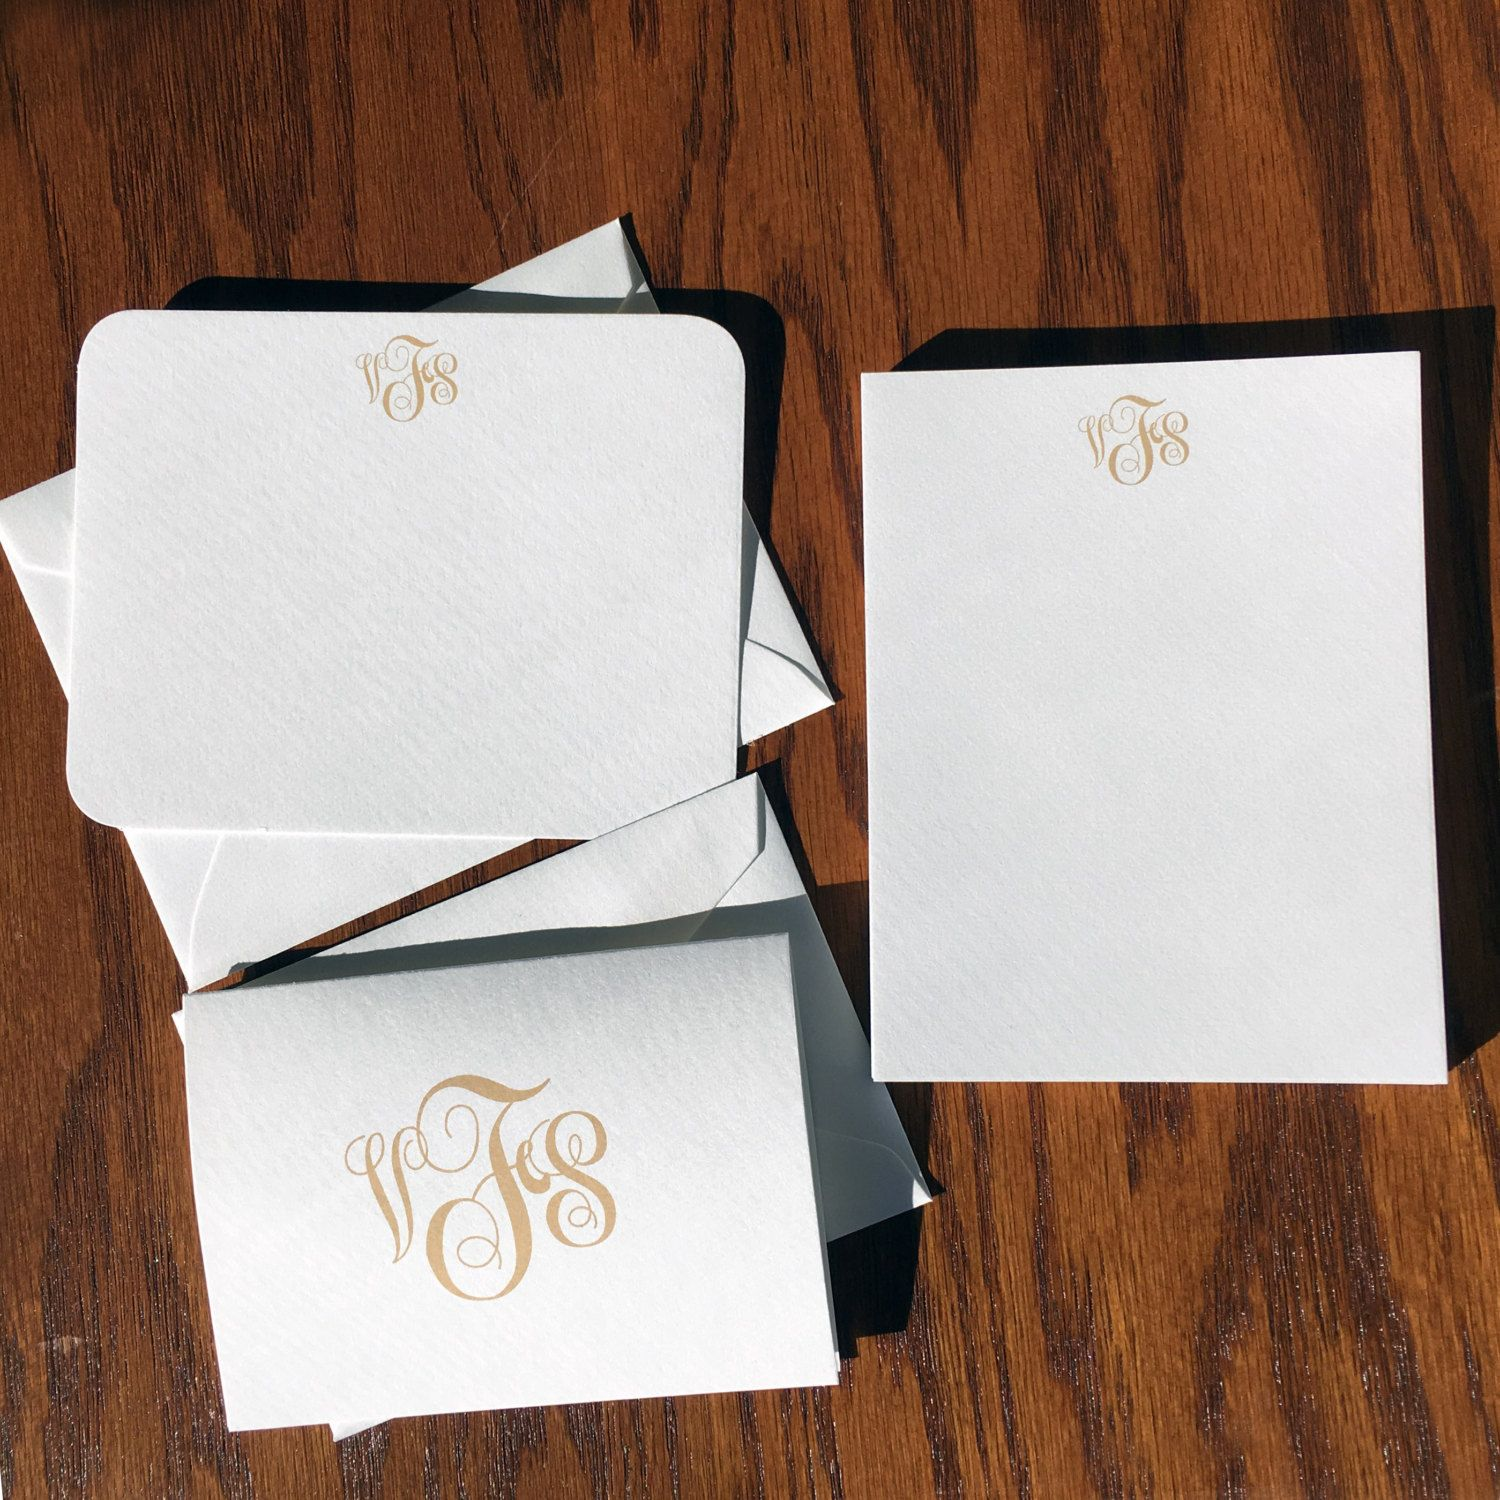 New to VeronicaFoleyDesign on Etsy: Monogrammed Stationery Set Personalized Stationery Gift Set Monogrammed Gift Set Traditional Script Monogrammed Stationary (49.00 USD)